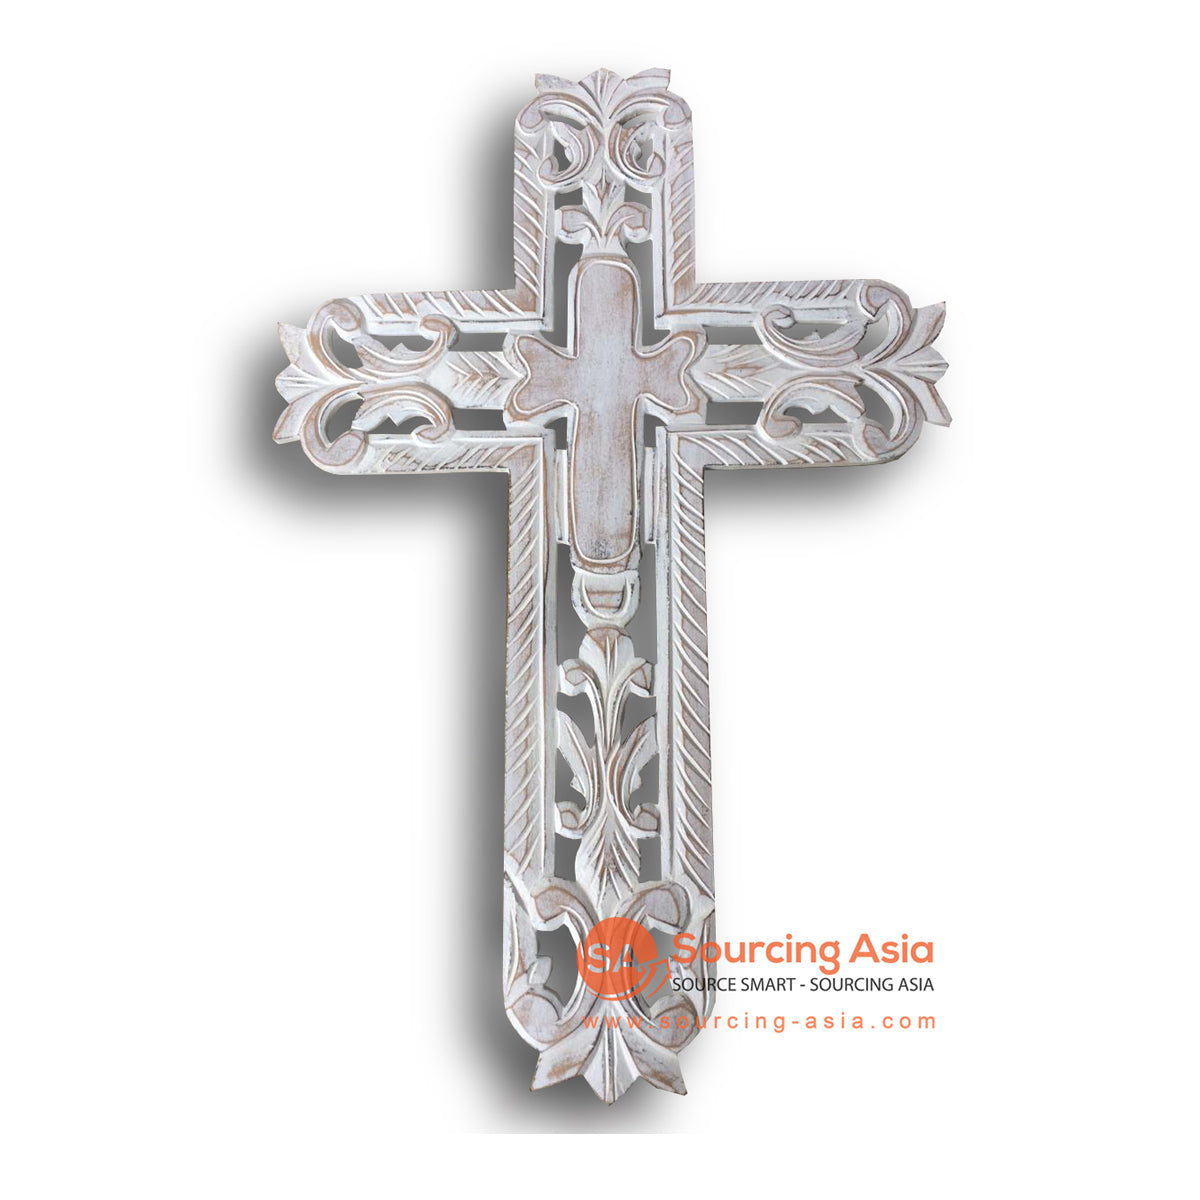 LUH045-1WW WHITE WASHED WOODEN CROSS WITH CARVING